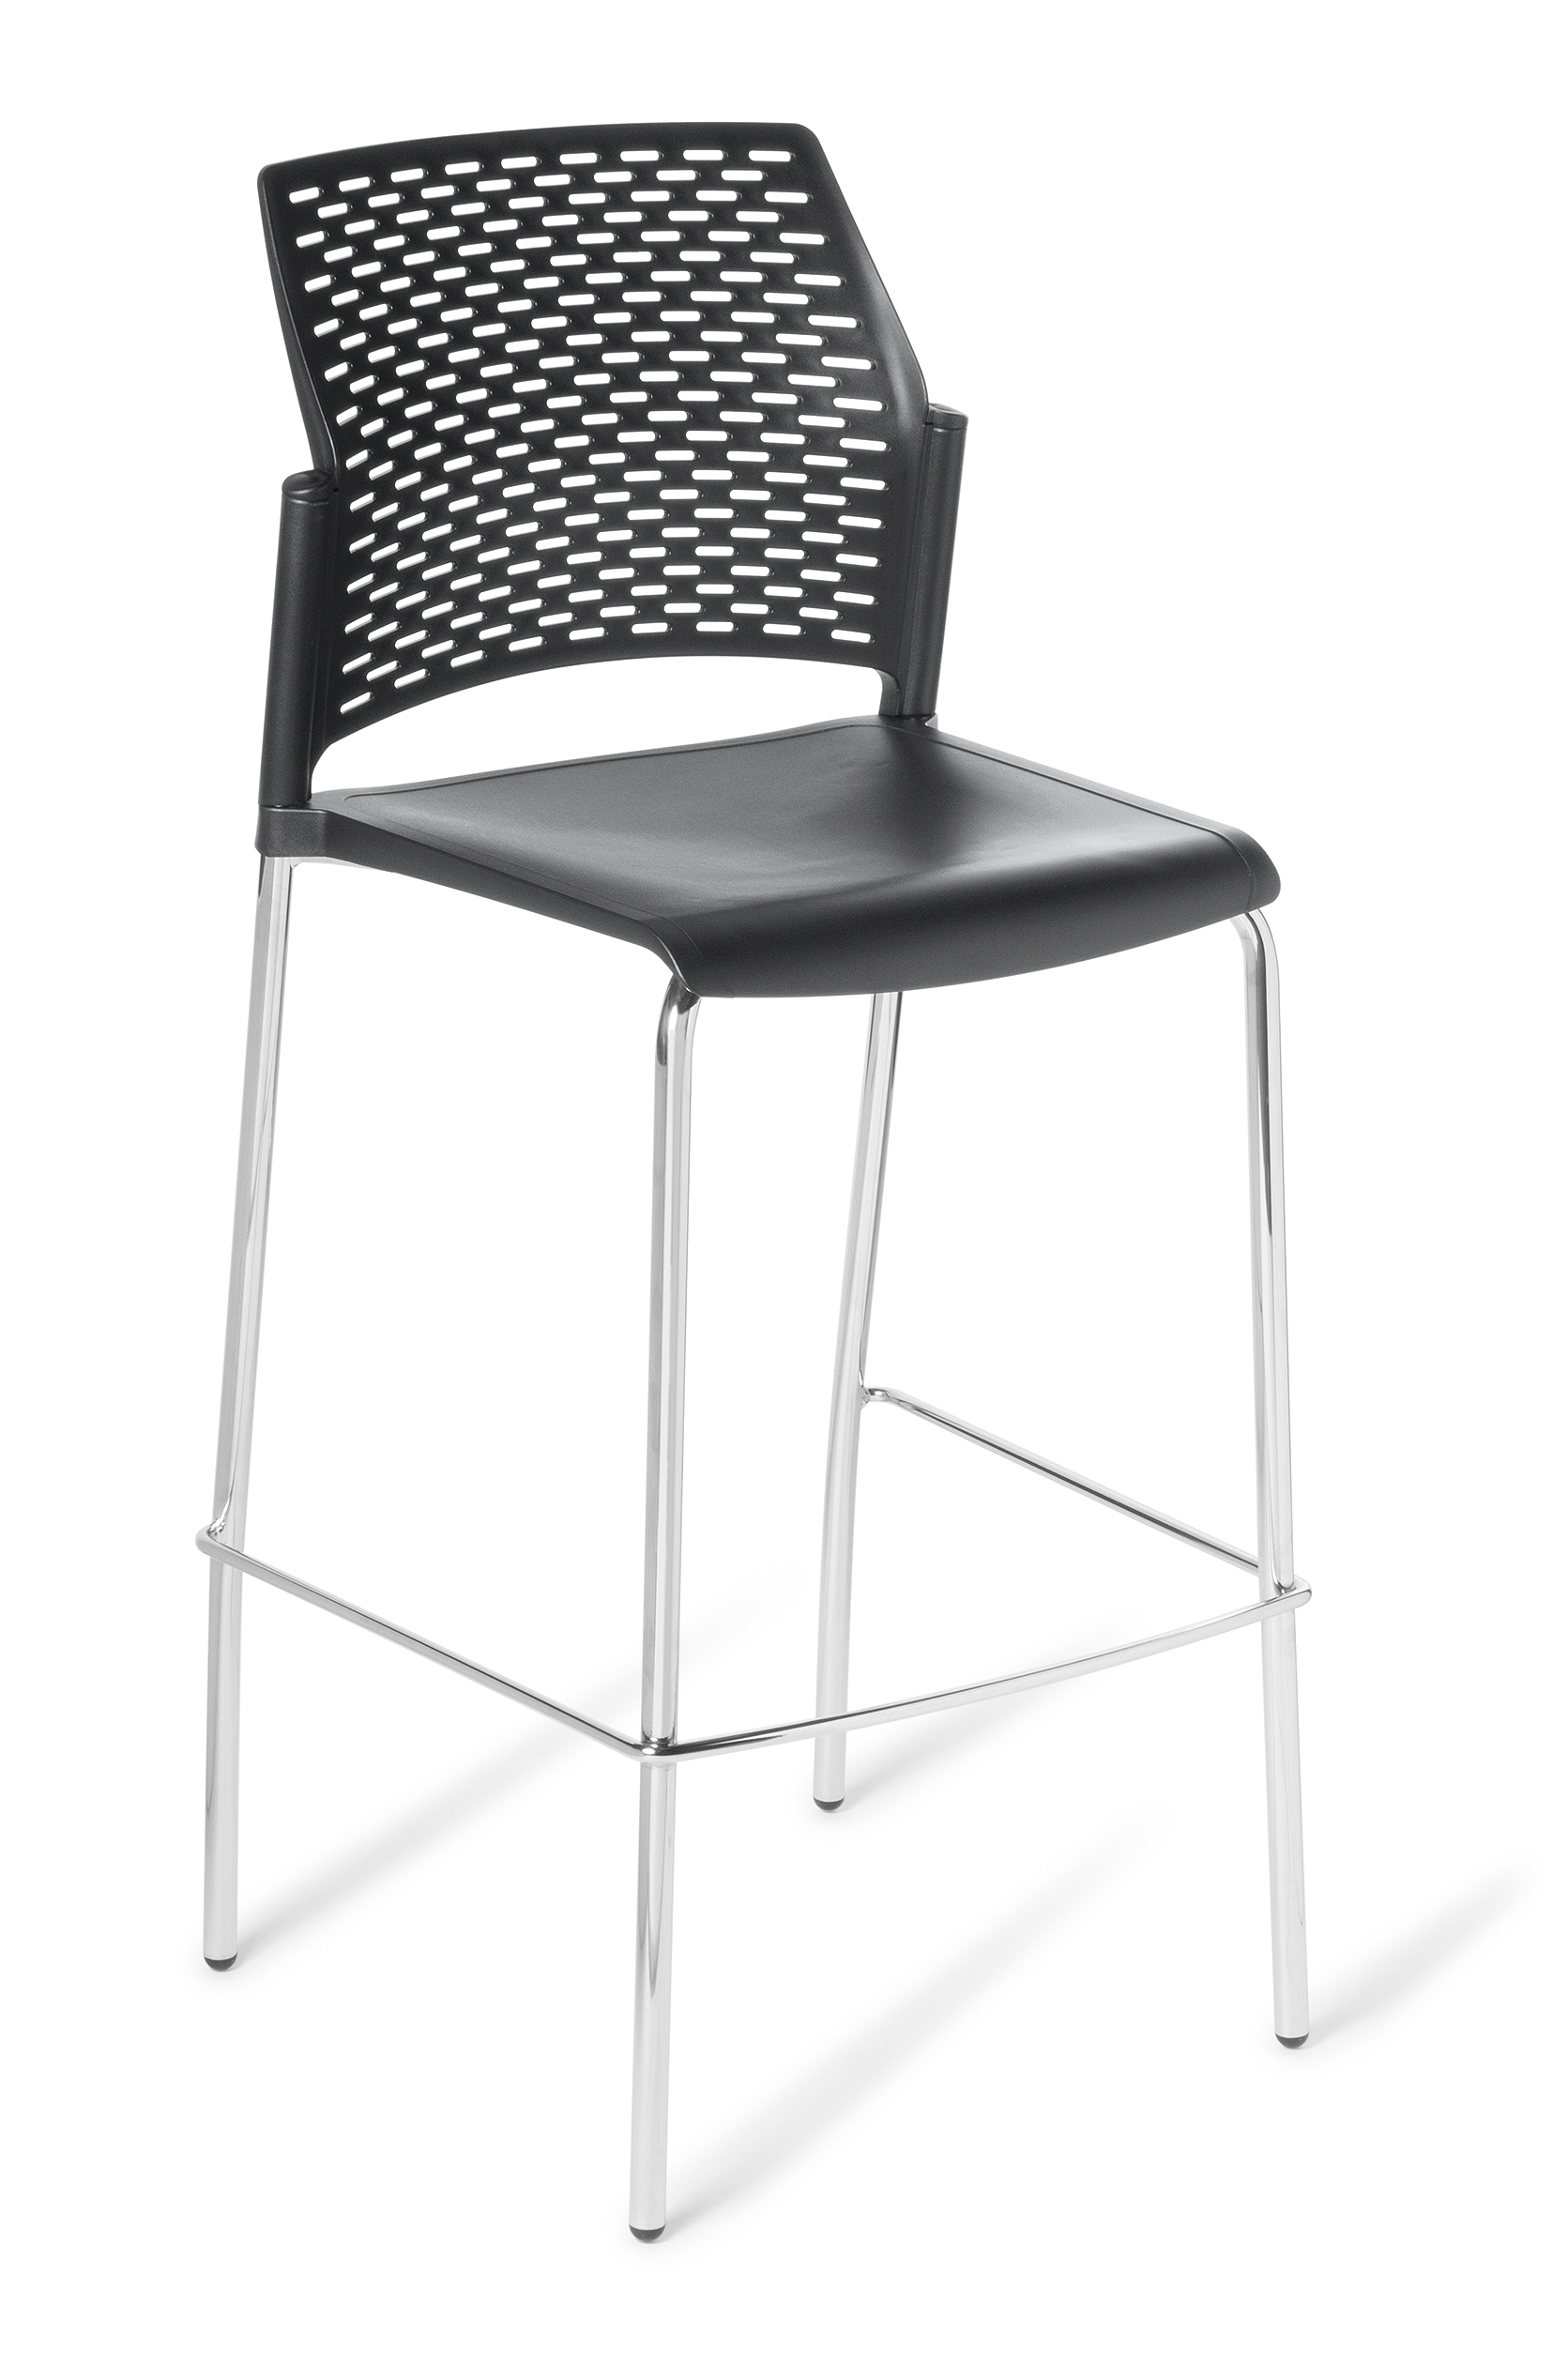 Punch Cafe Visitor Chair Distinction Furniture : Punchbarstool from www.distinction.net.nz size 1671 x 2516 jpeg 911kB